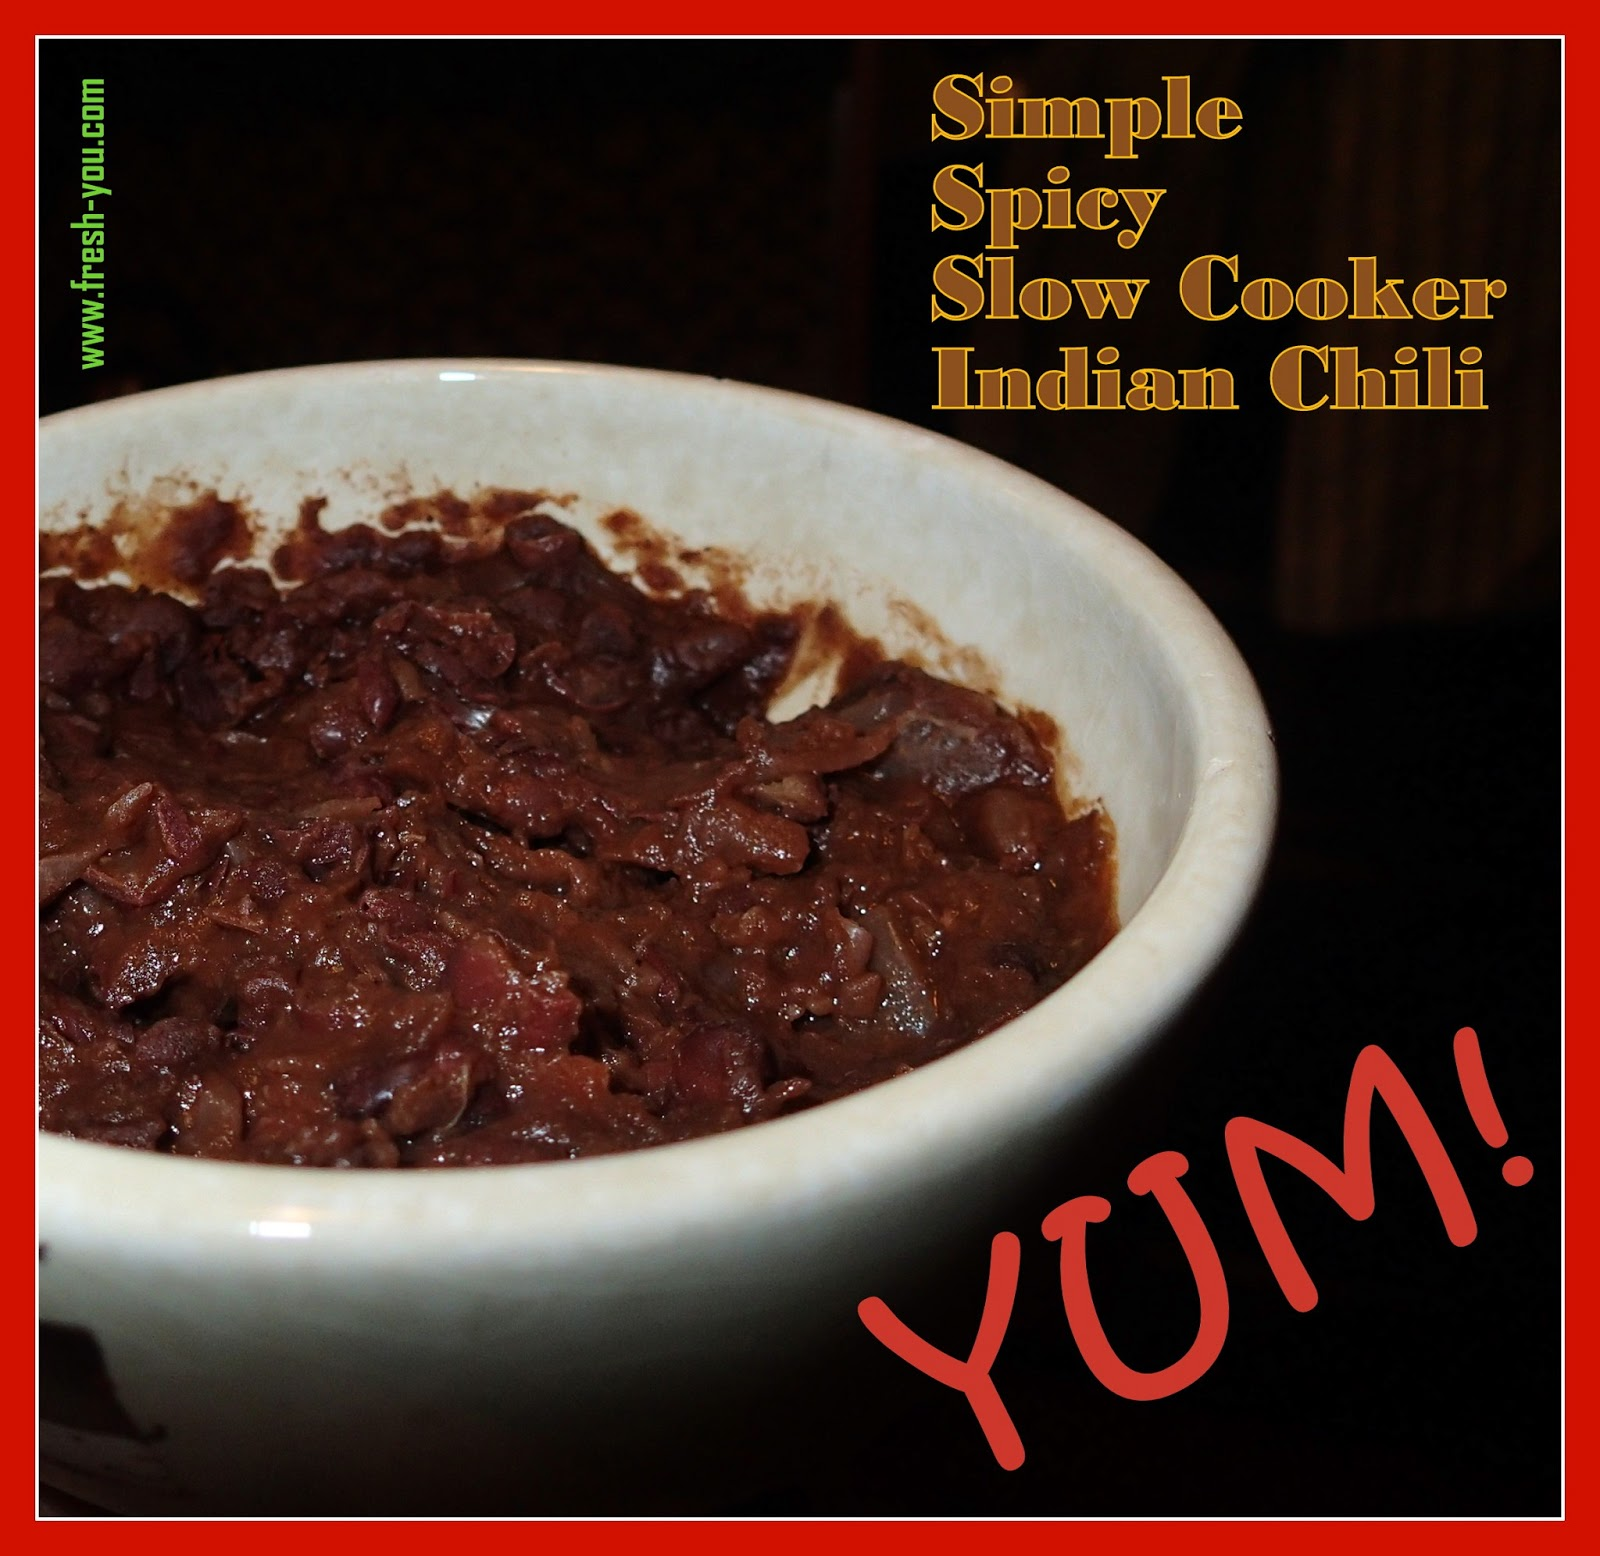 Simple Spicy Slow Cooker Indian Chili